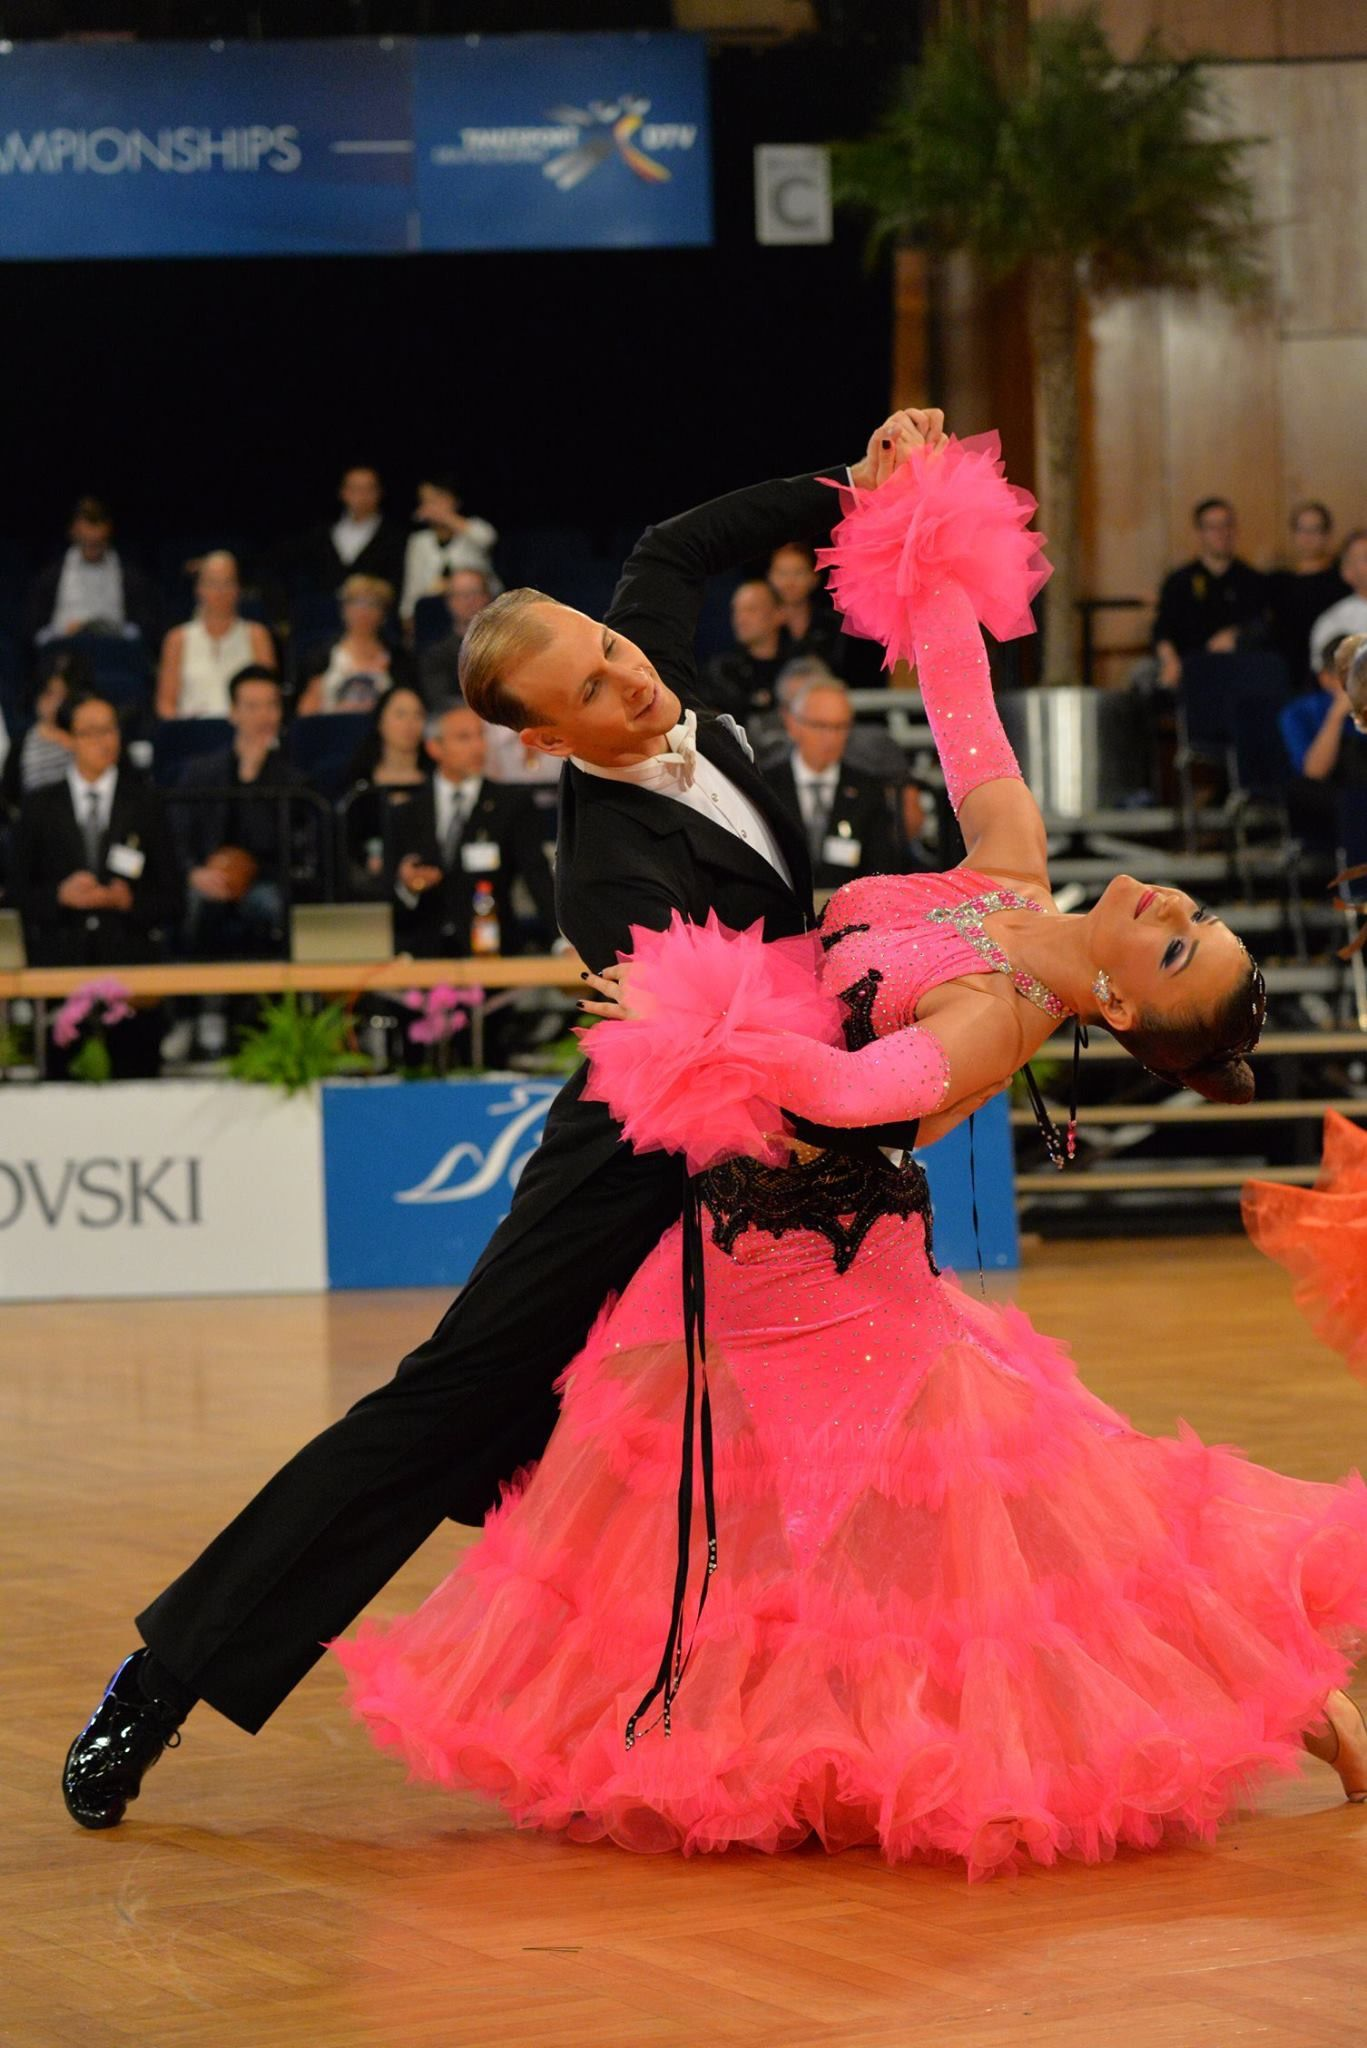 Vestidos Baile Salon Dance Technical Terms And Their Meanings Ballroom Dancing